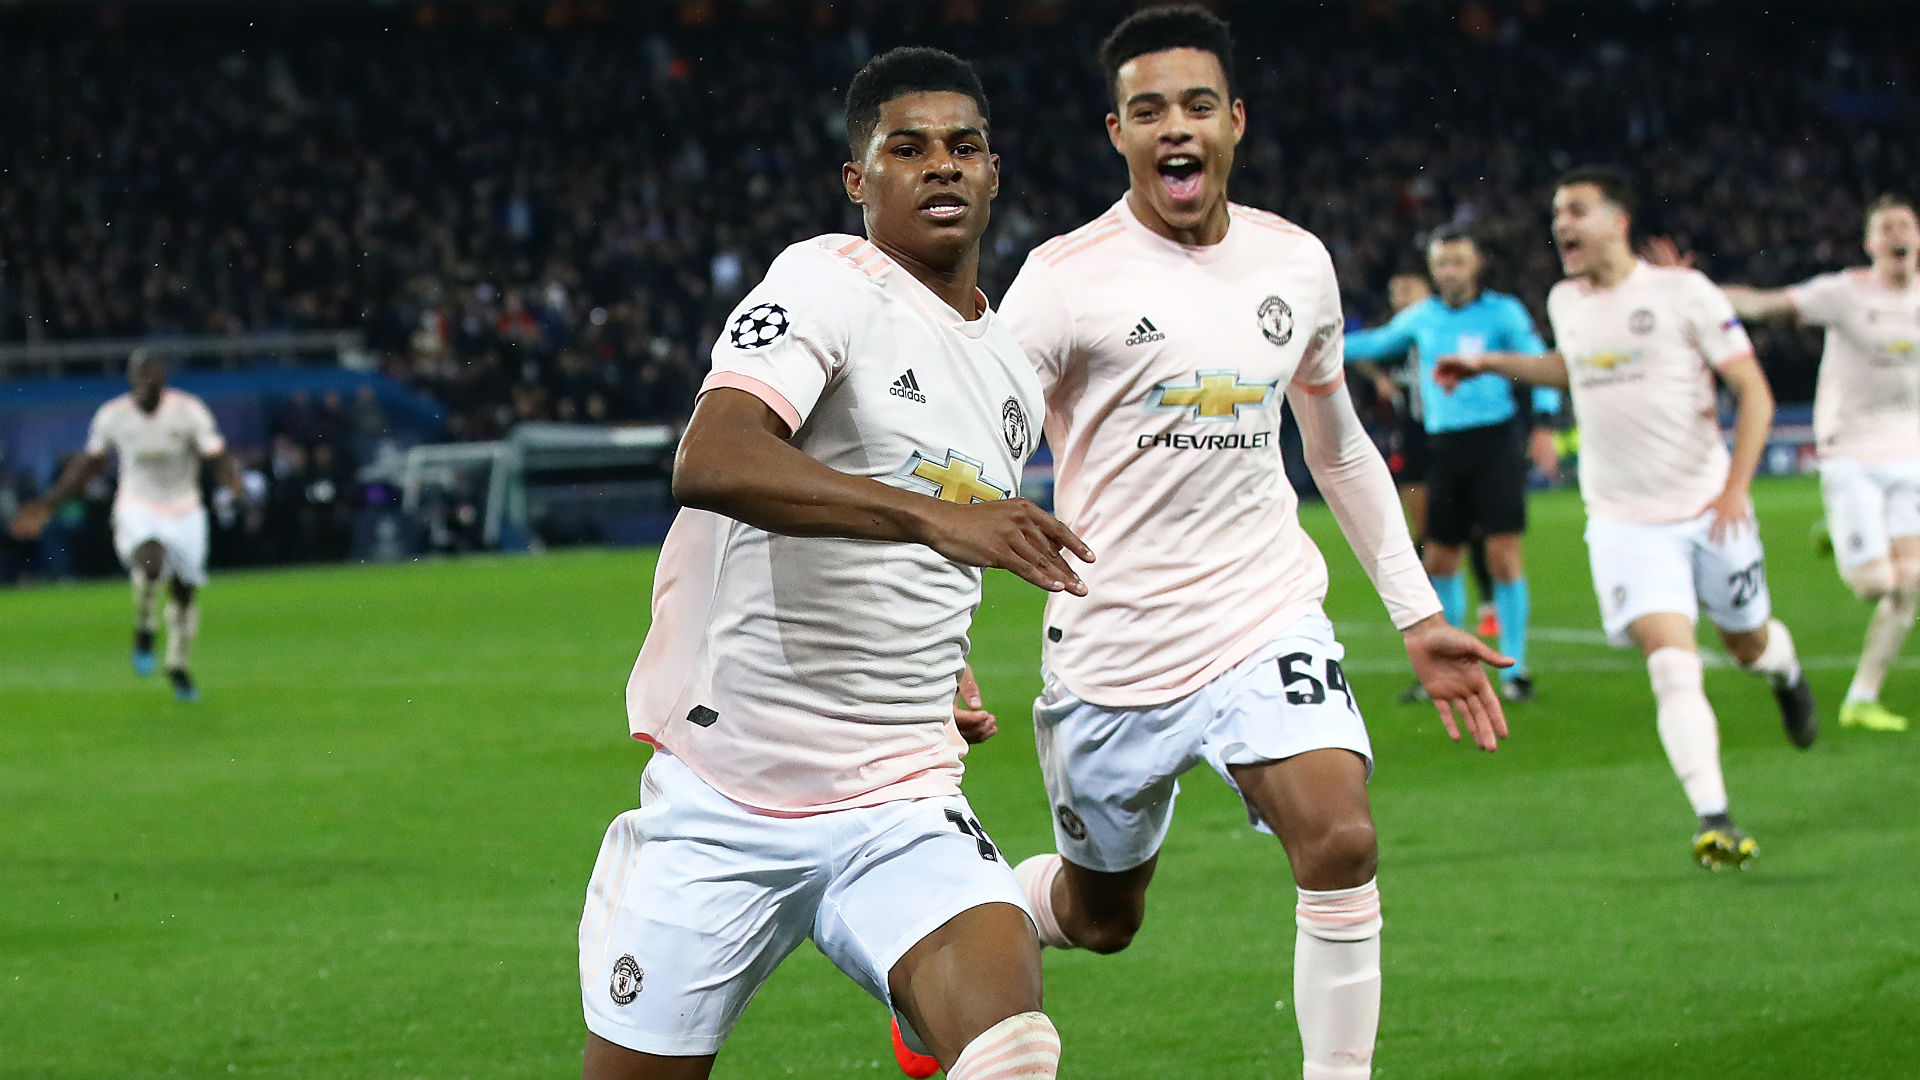 Rashford passed fit, Pique makes first return to Old Trafford